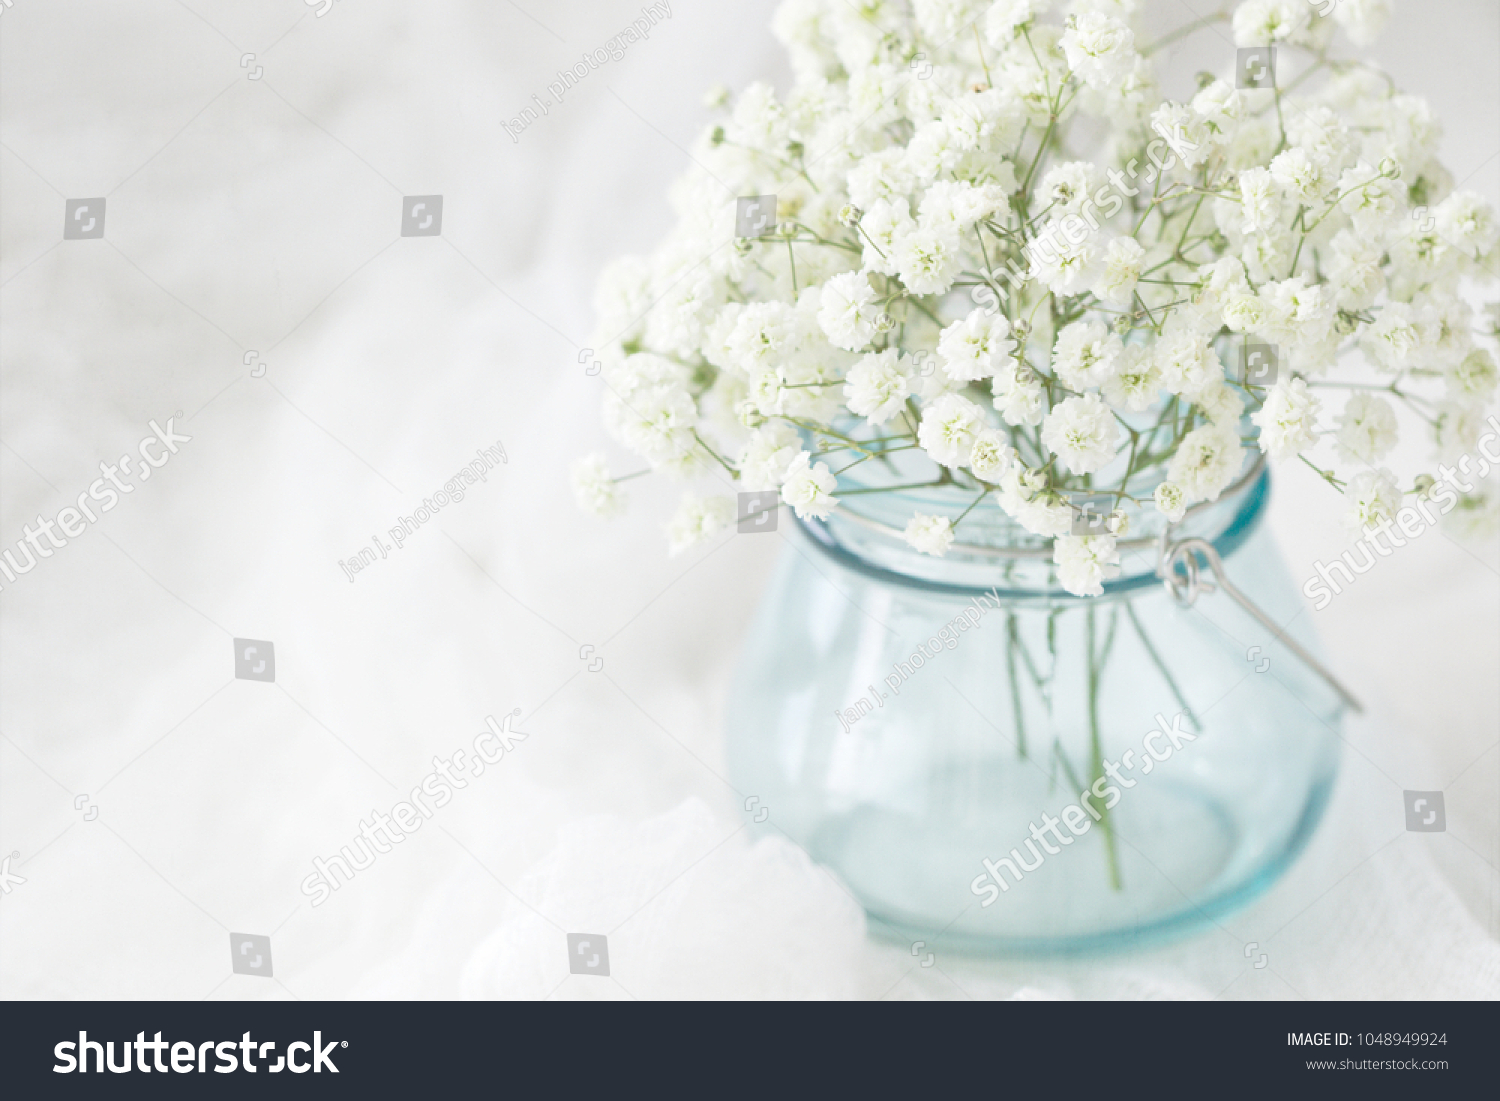 Photograph white breath flowers tiffany blue stock photo edit now photograph of white babys breath flowers in a tiffany blue glass jar izmirmasajfo